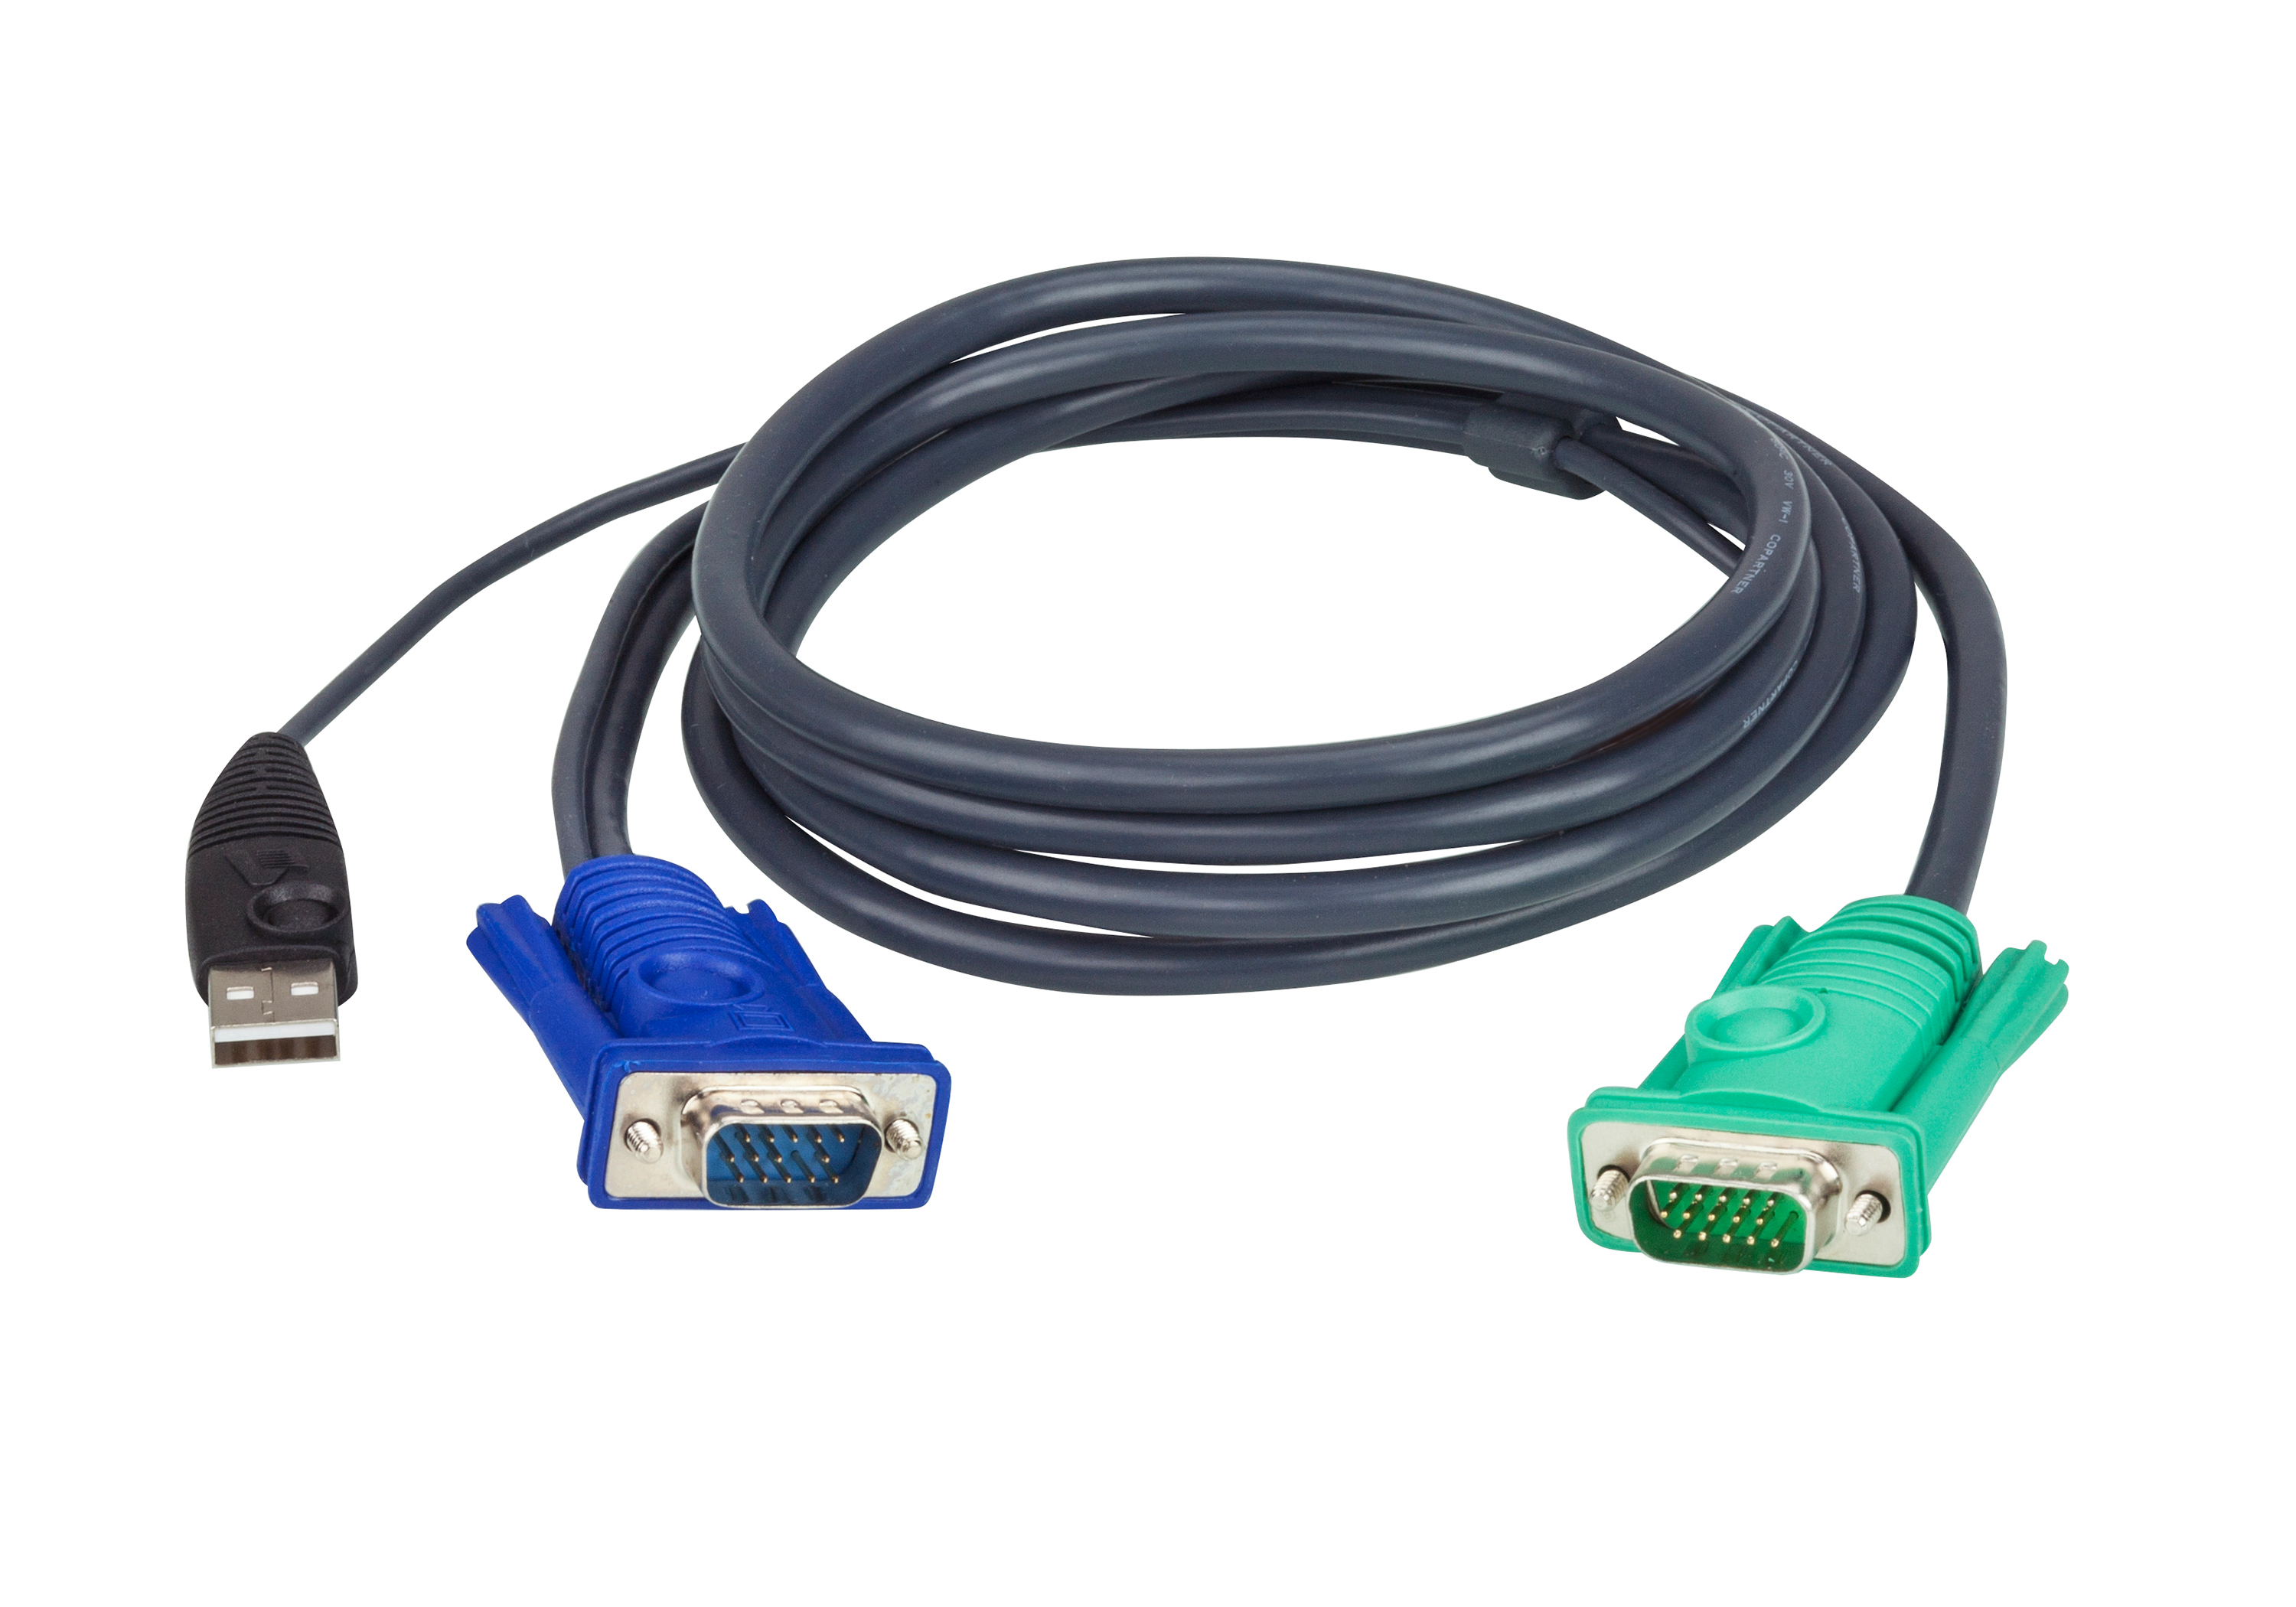 1.8M USB KVM Cable with 3 in 1 SPHD-1